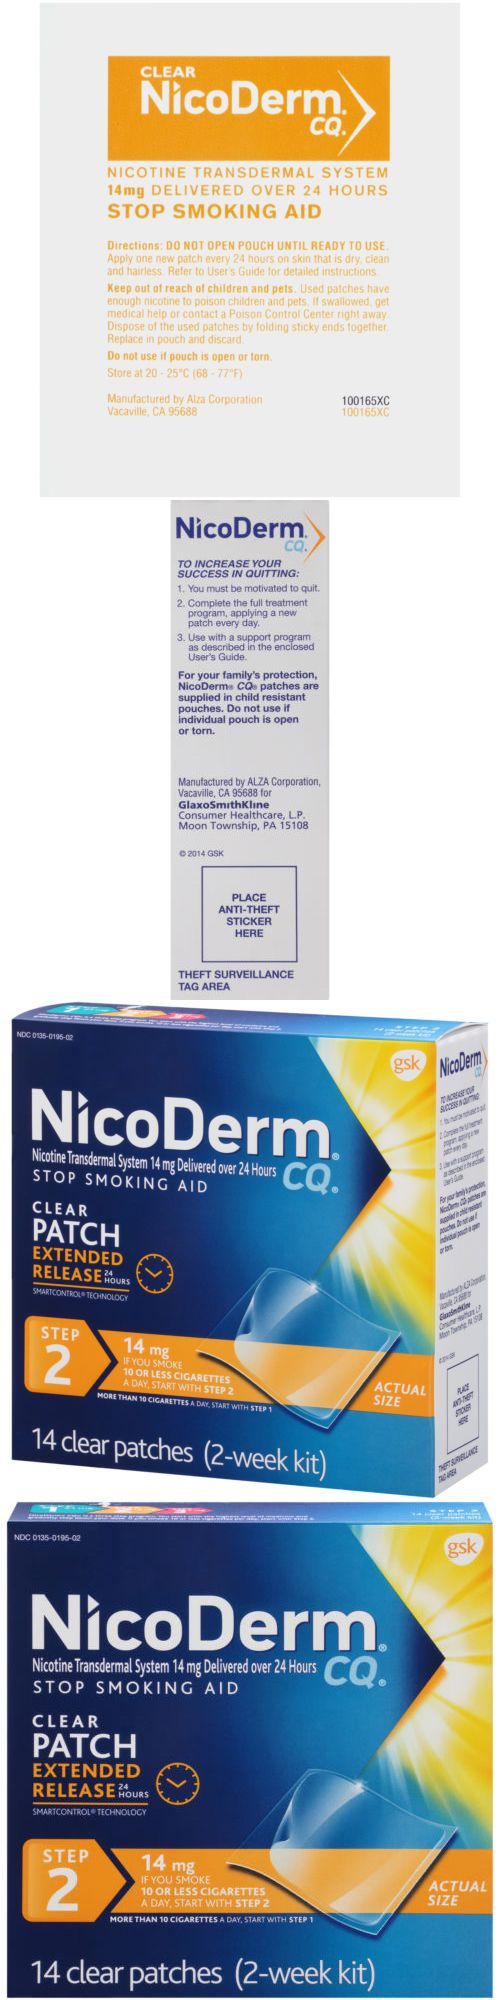 Patches: Nicoderm Cq Step 2 Stop Smoking Aid Nicotine Patch, 14Mg, 14 Clear Patches BUY IT NOW ONLY: $58.47